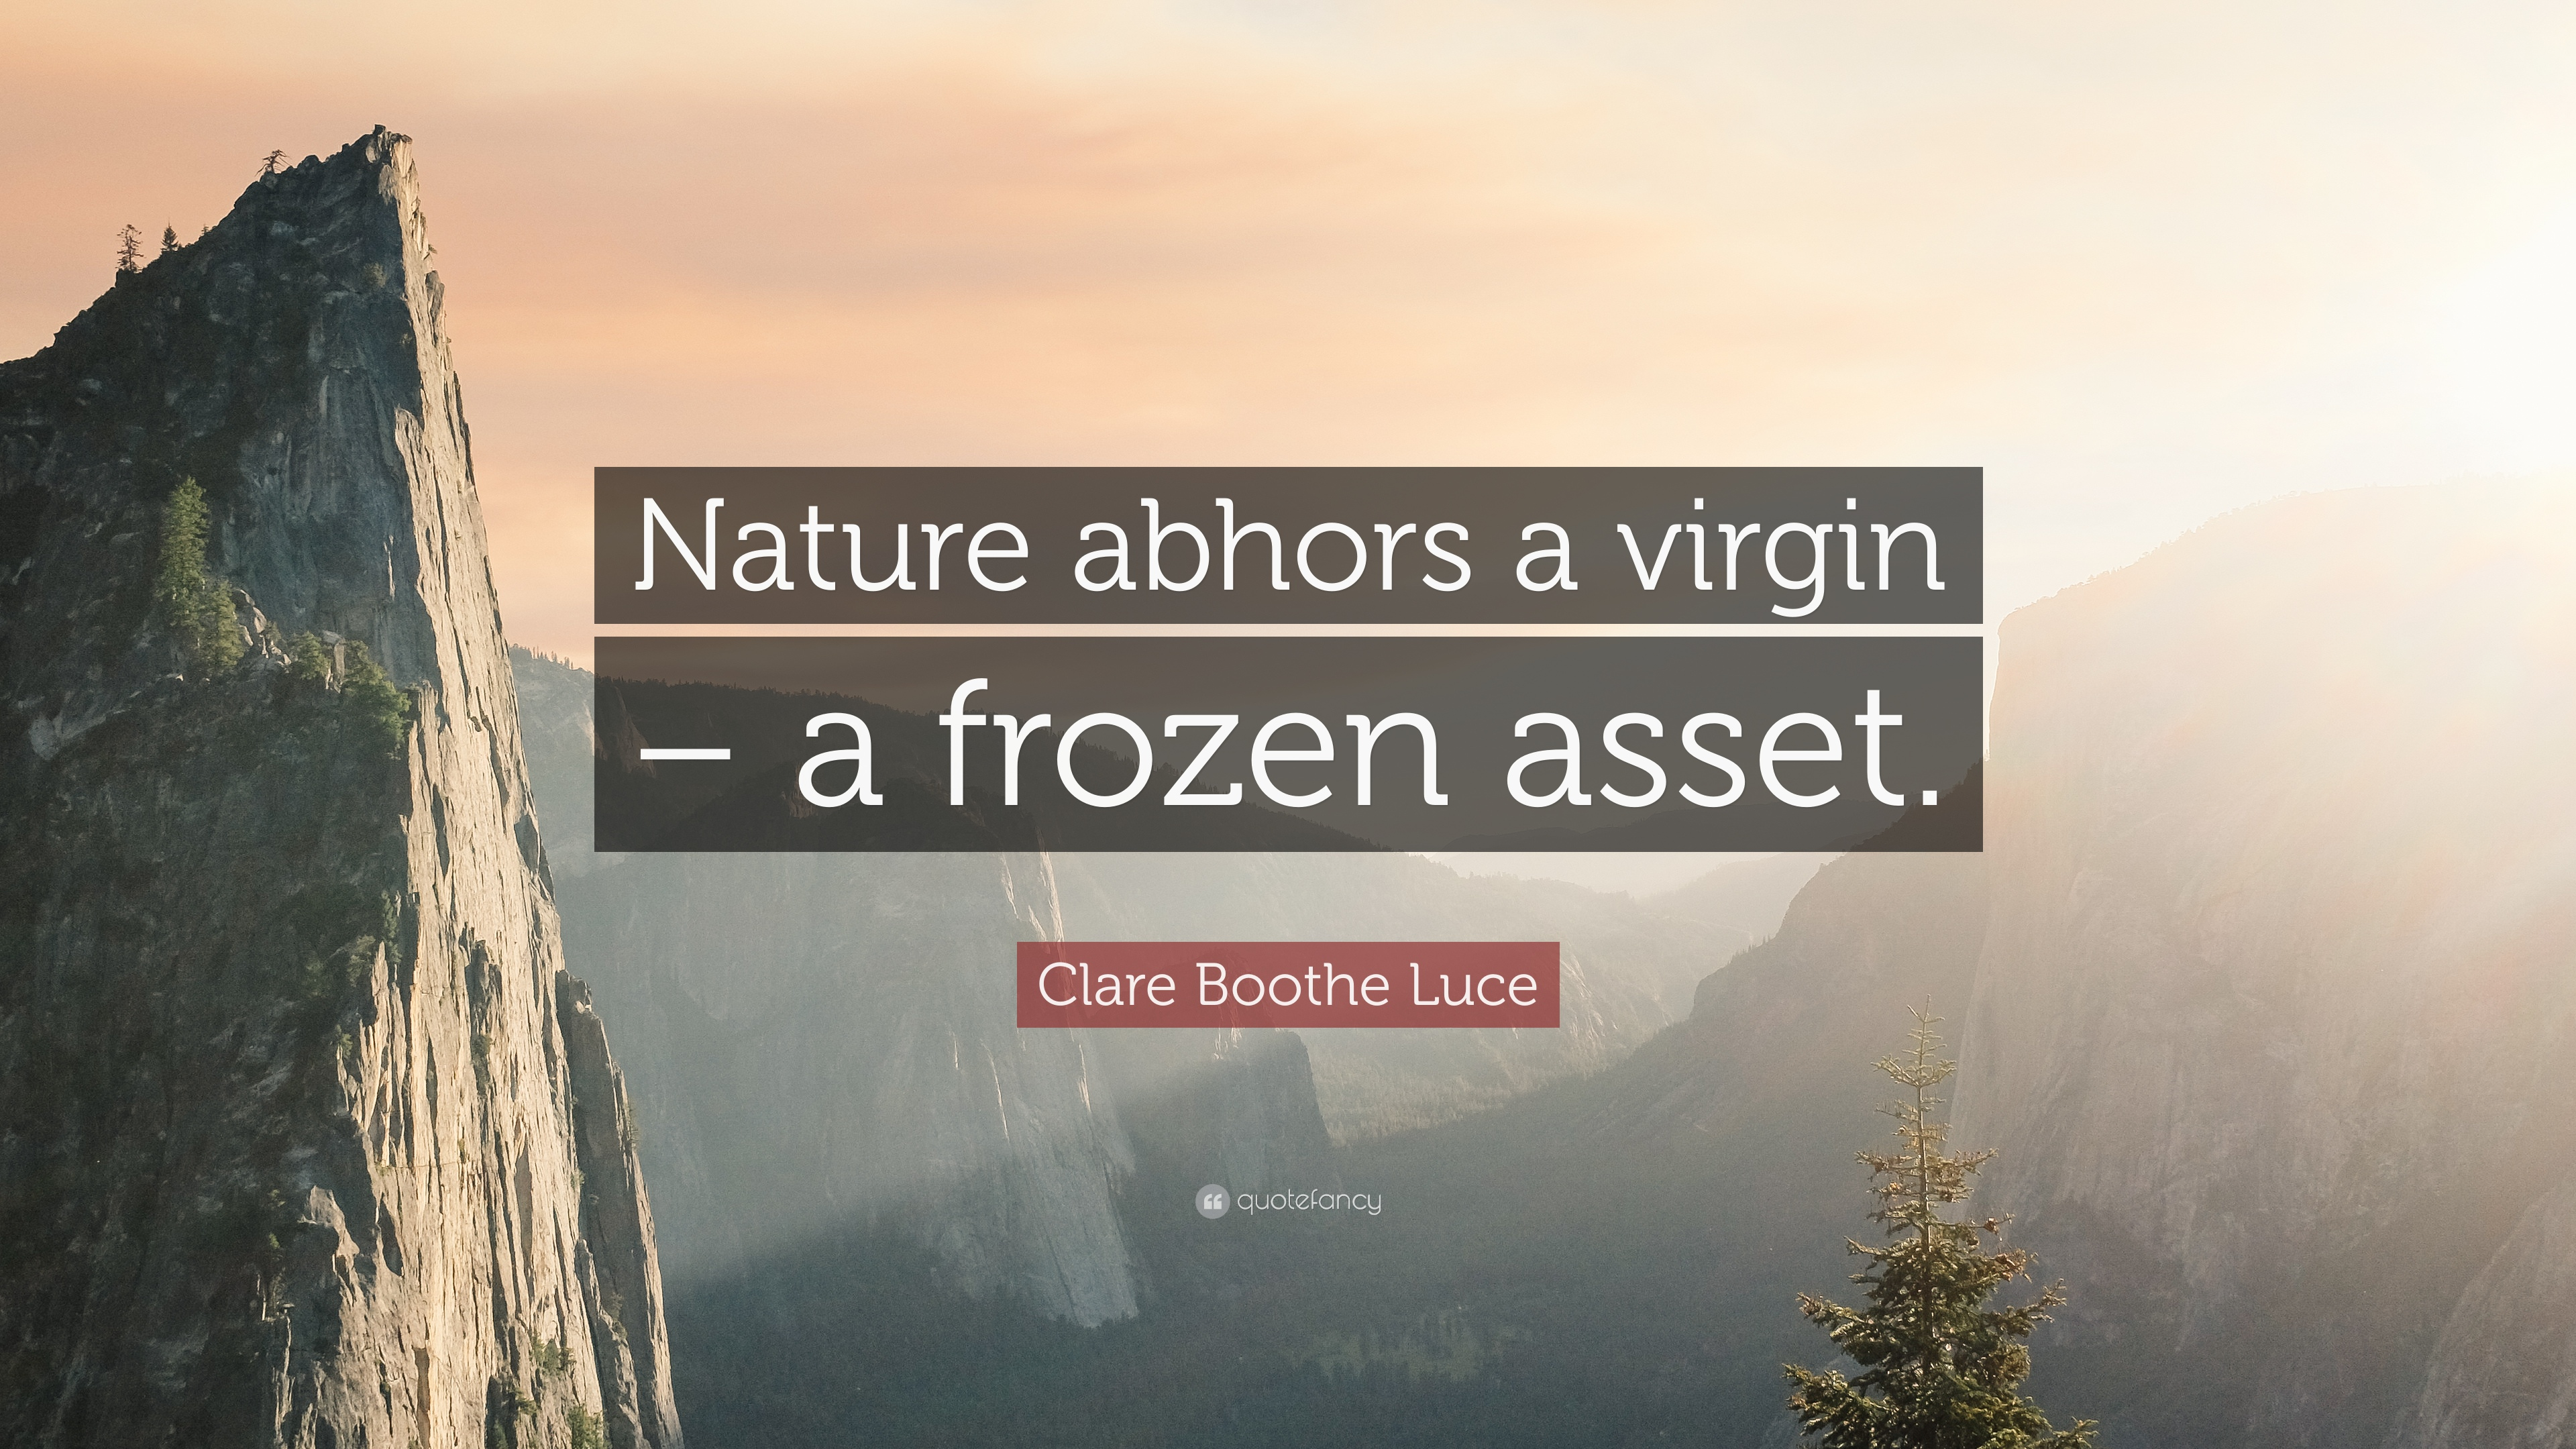 Clare Boothe Luce Quote Nature Abhors A Virgin A Frozen Asset Images, Photos, Reviews